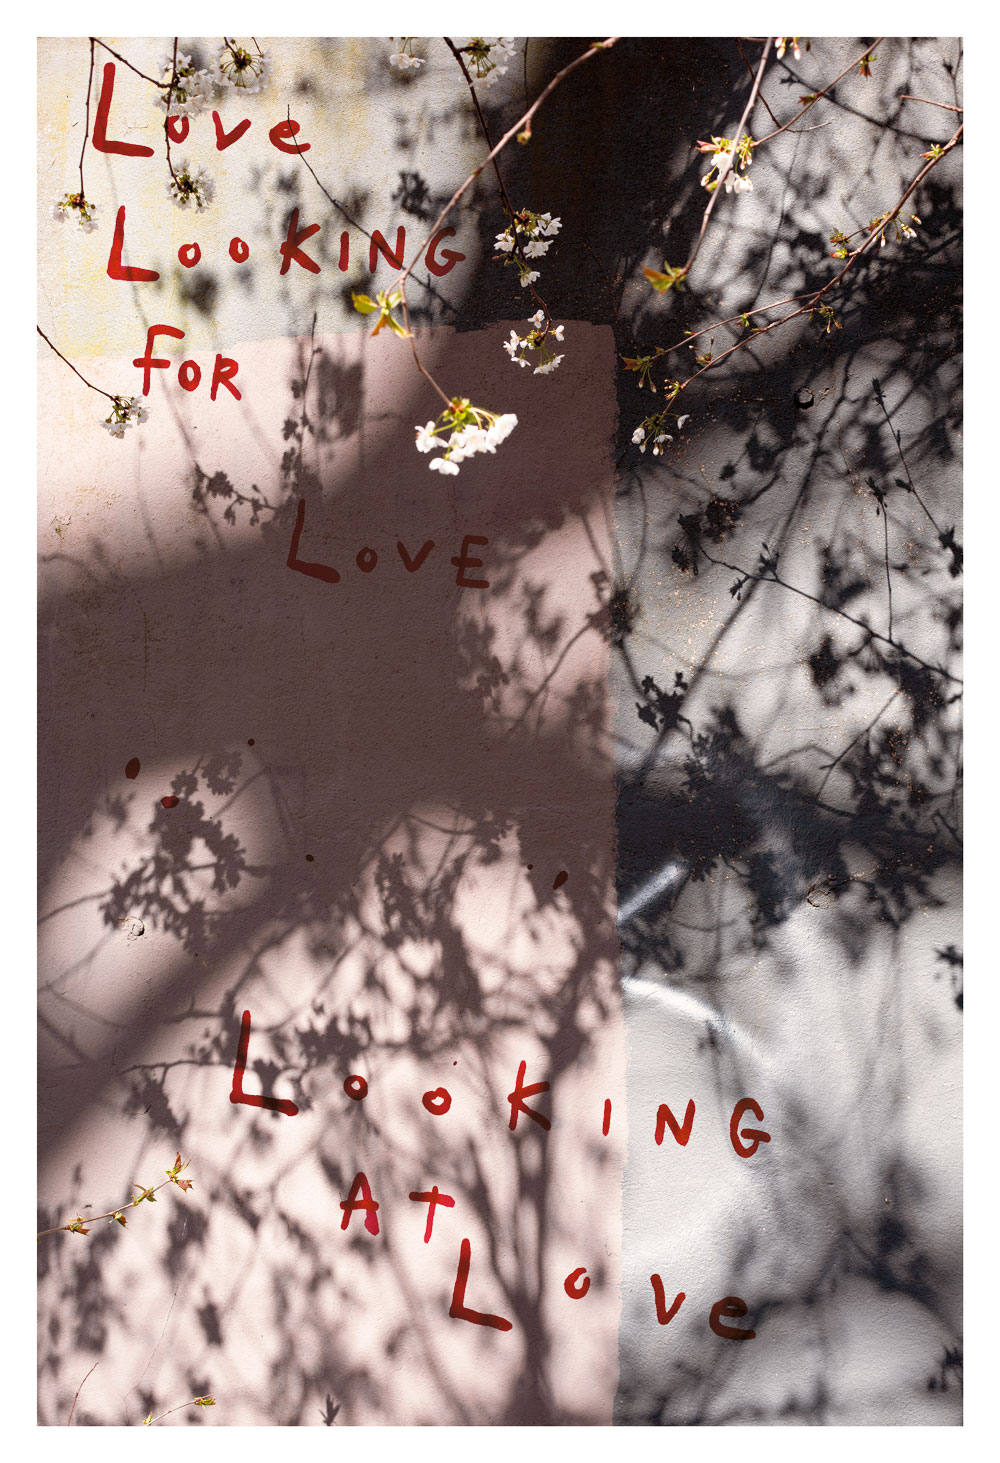 Melissa Spiccia | SEE FLOWERS IN HELL LOVE LOOKING FOR LOVE MELISSA SPICCIA